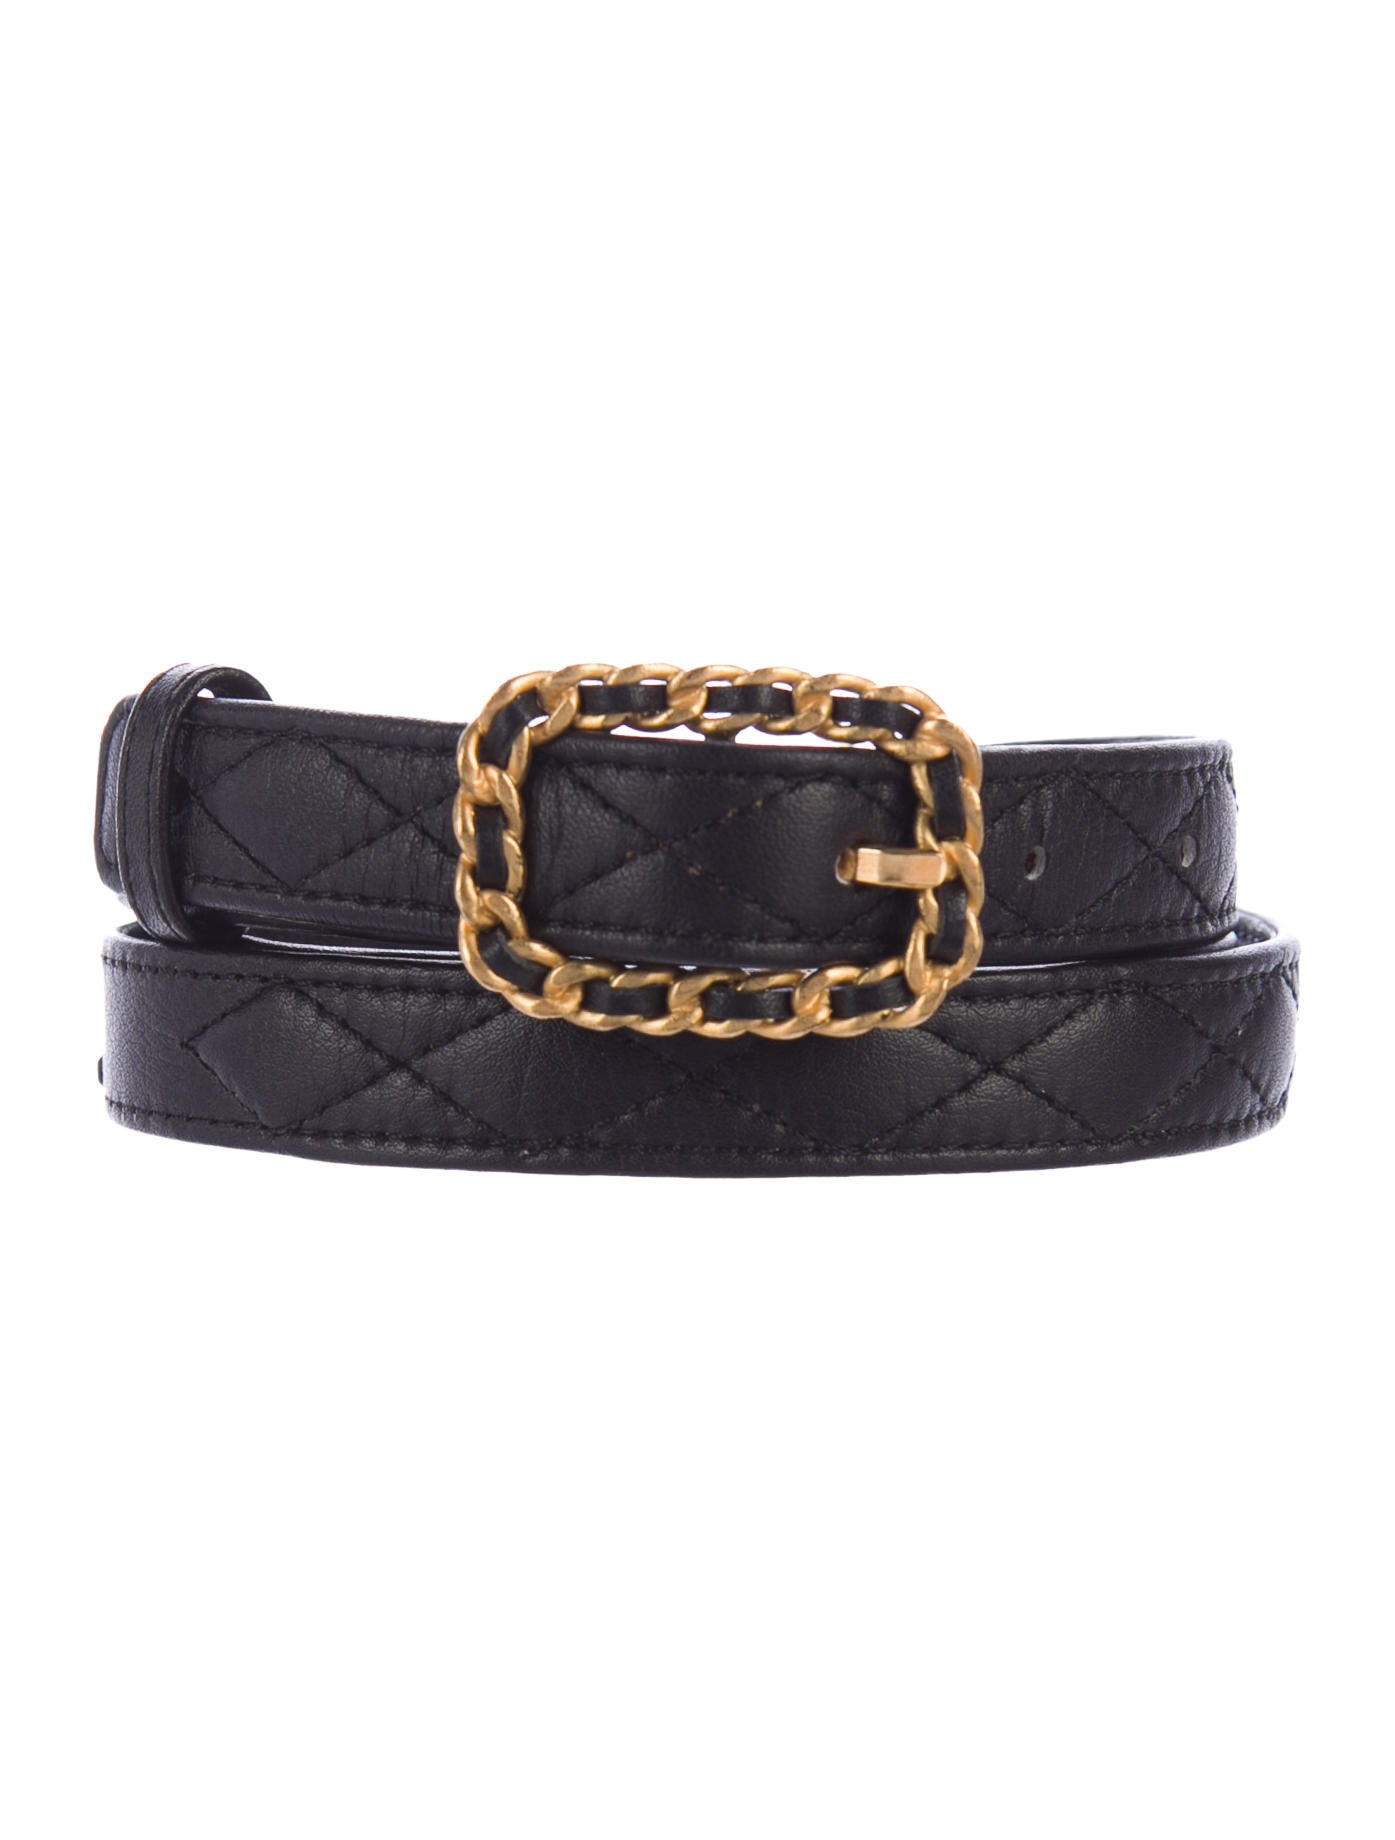 Chanel Quilted Leather Belt - Accessories - CHA198502 ...